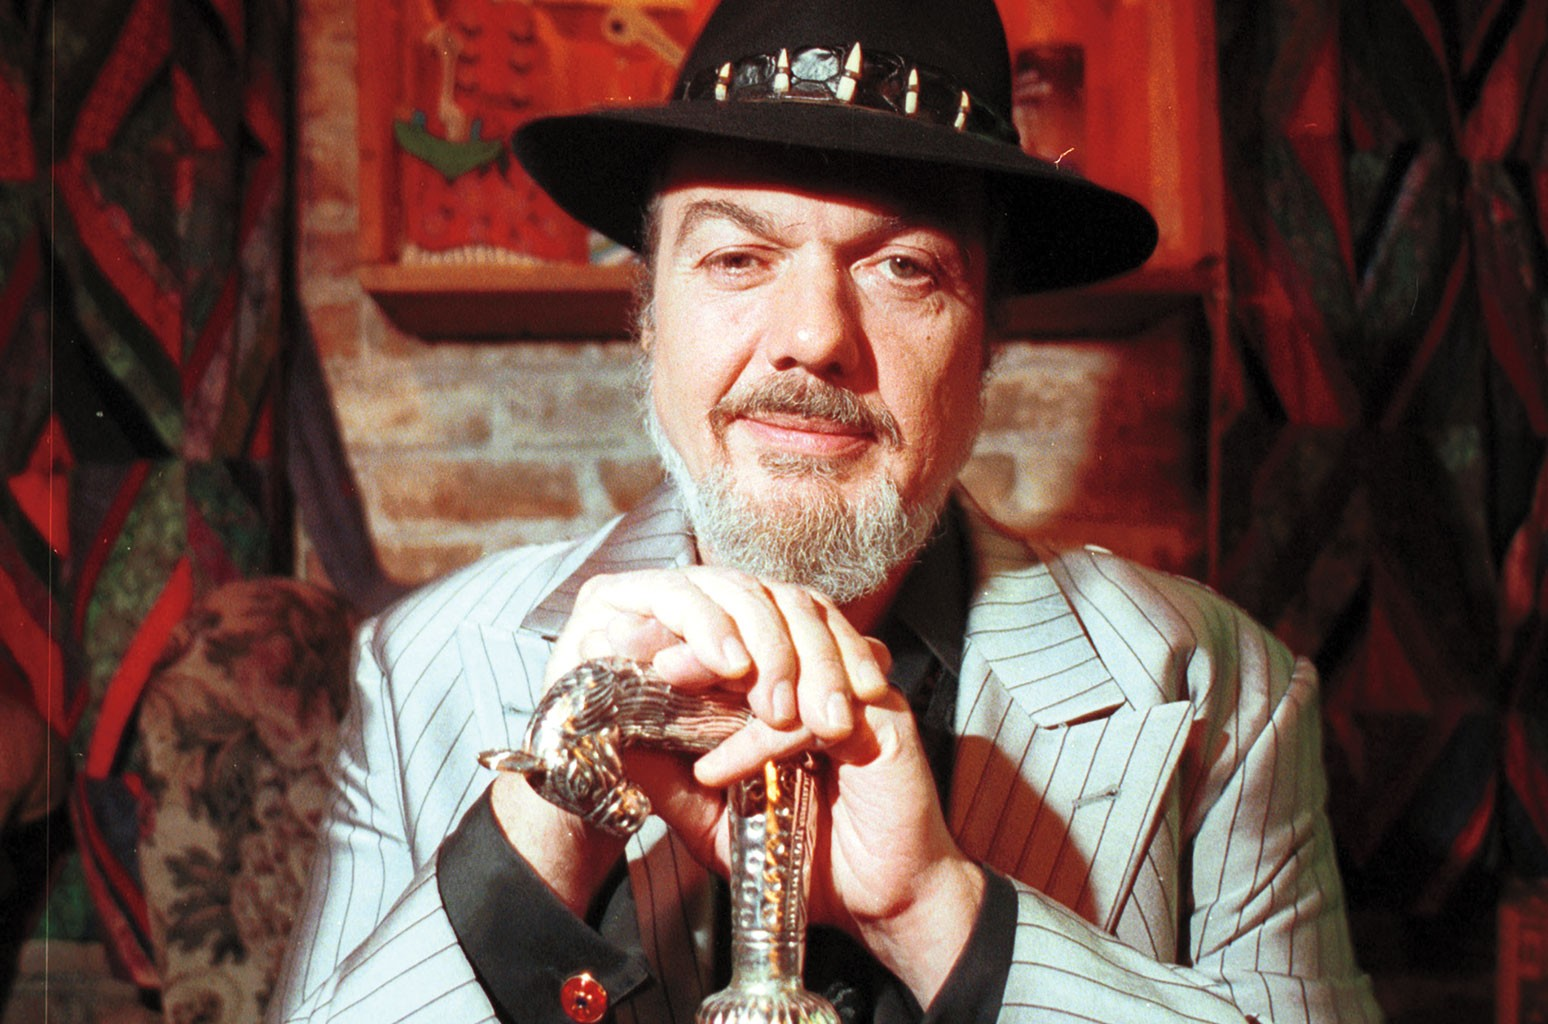 Dr. John in New Orleans in 2000.